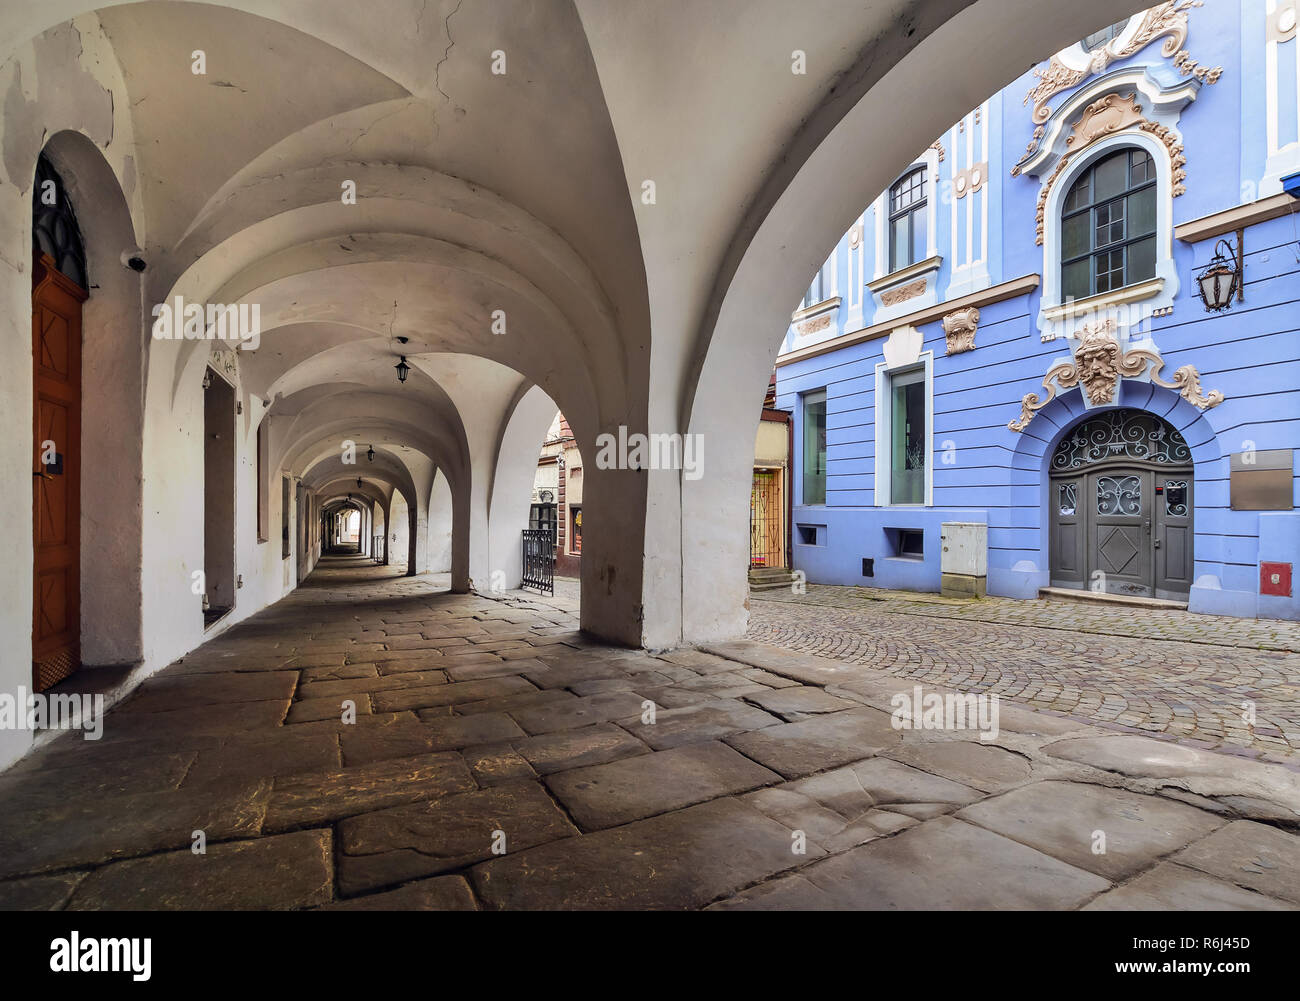 Architecture in the old town of Bielsko-Biala, Poland. - Stock Image